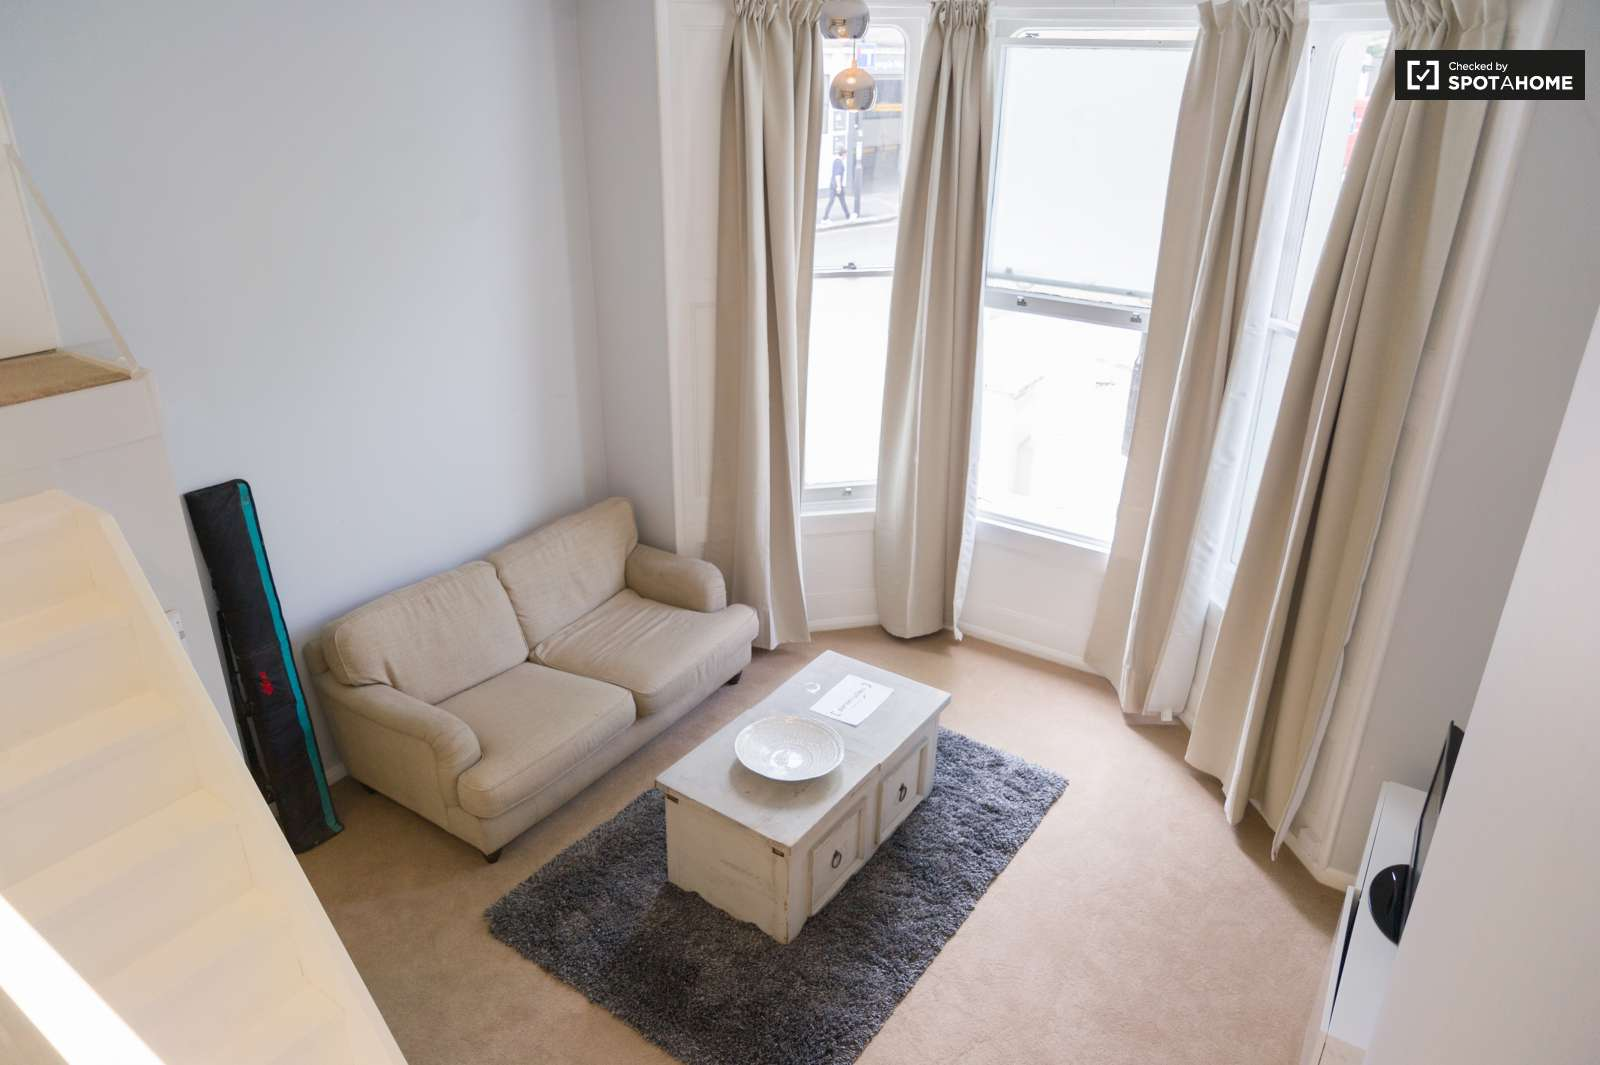 Studio flat with double bed to rent in Kensington, London (ref ...